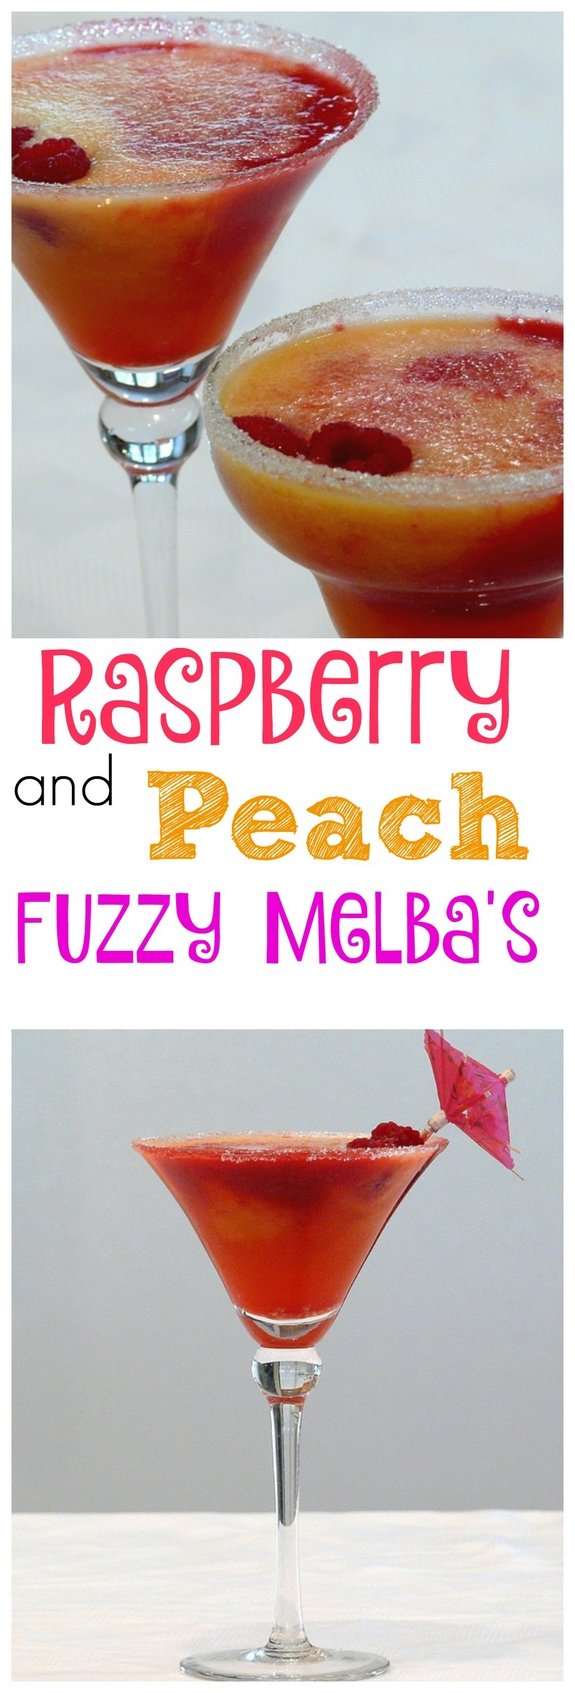 Raspberry and Peach Fuzzy Melbas